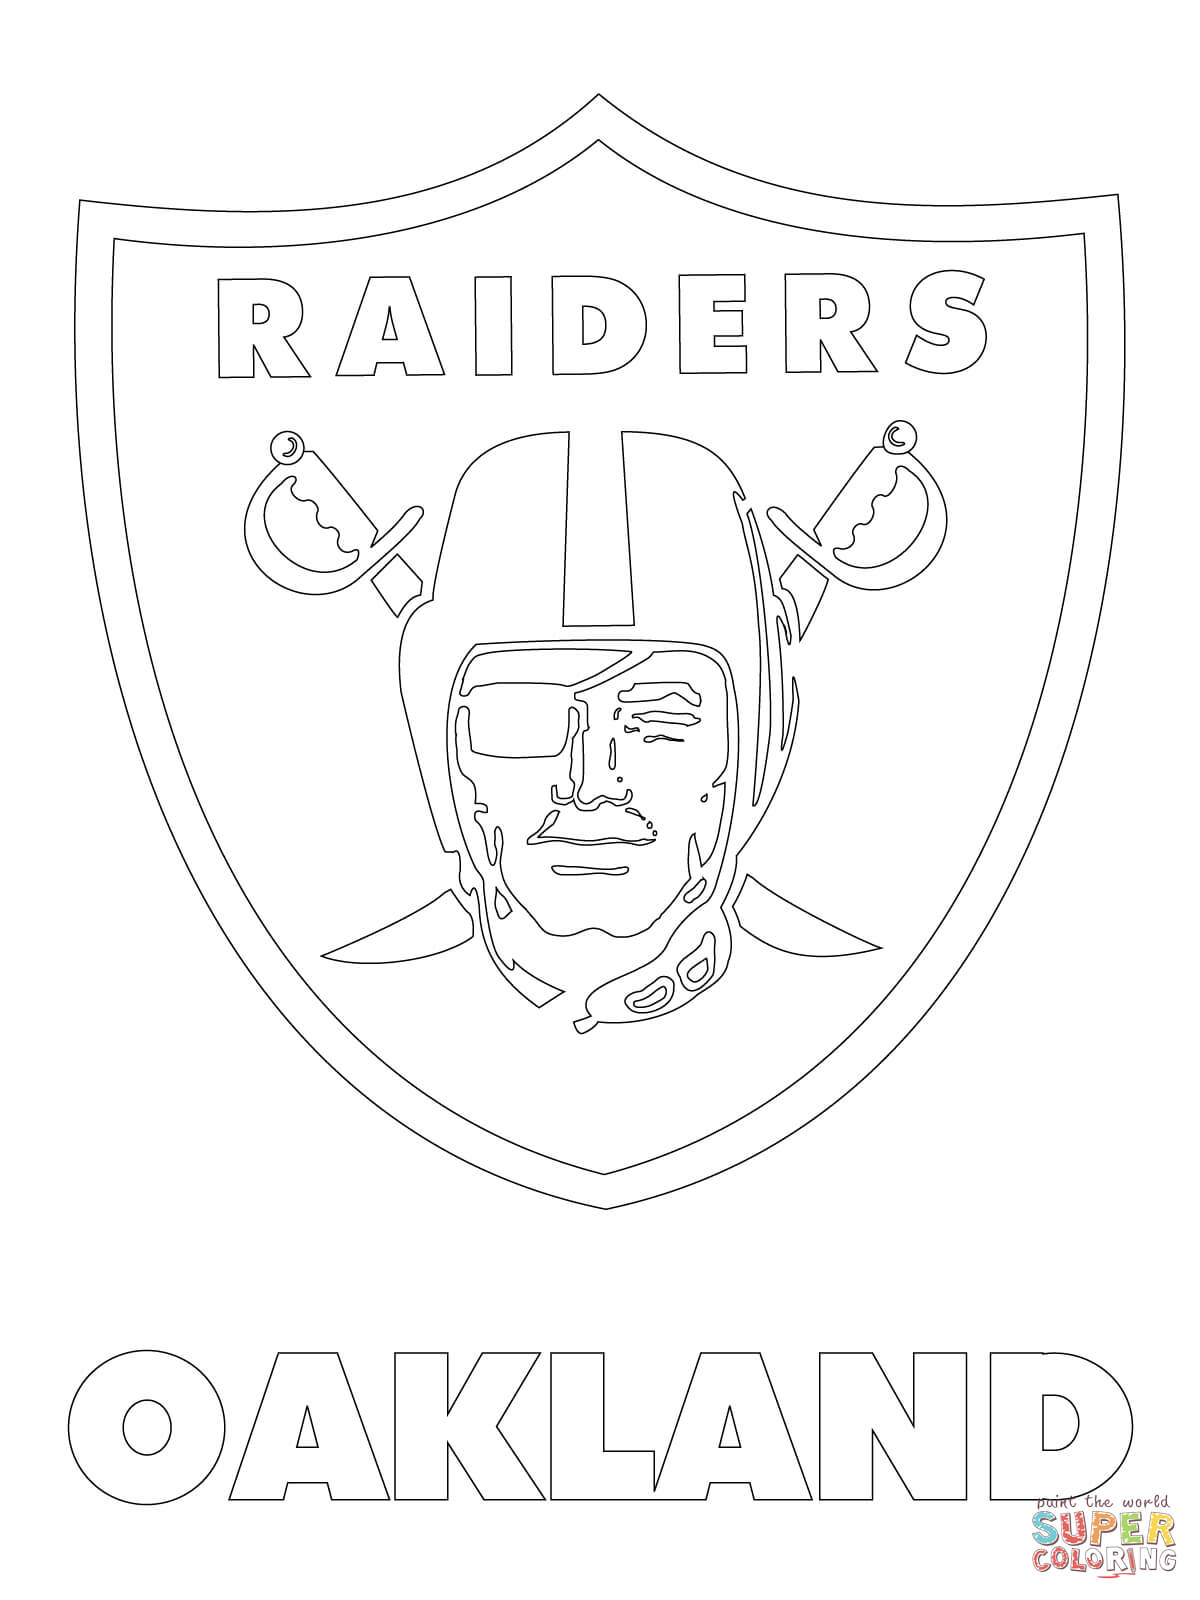 Oakland Raiders Logo coloring page.